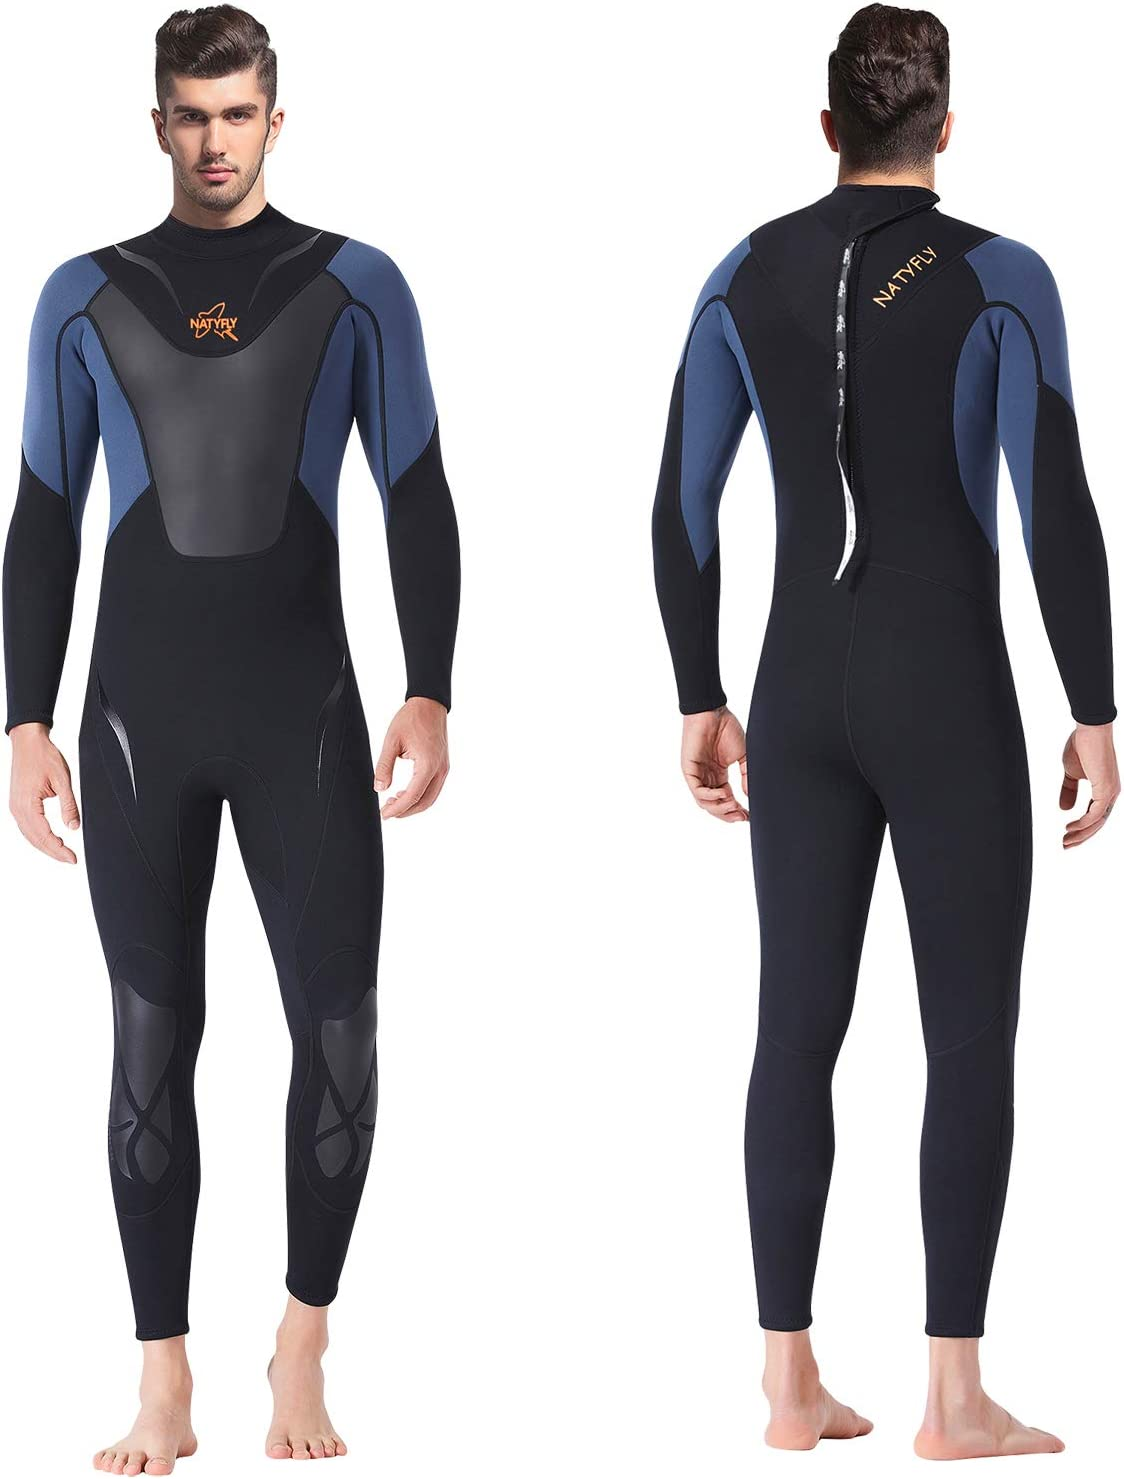 NATYFLY Mens Wetsuit 3mm Neoprene Jumpsuit, Youth Women Full Body Diving Suits for Scuba Surfing Swimming Long Sleeve Back Zip for Water Sports: Sports & Outdoors